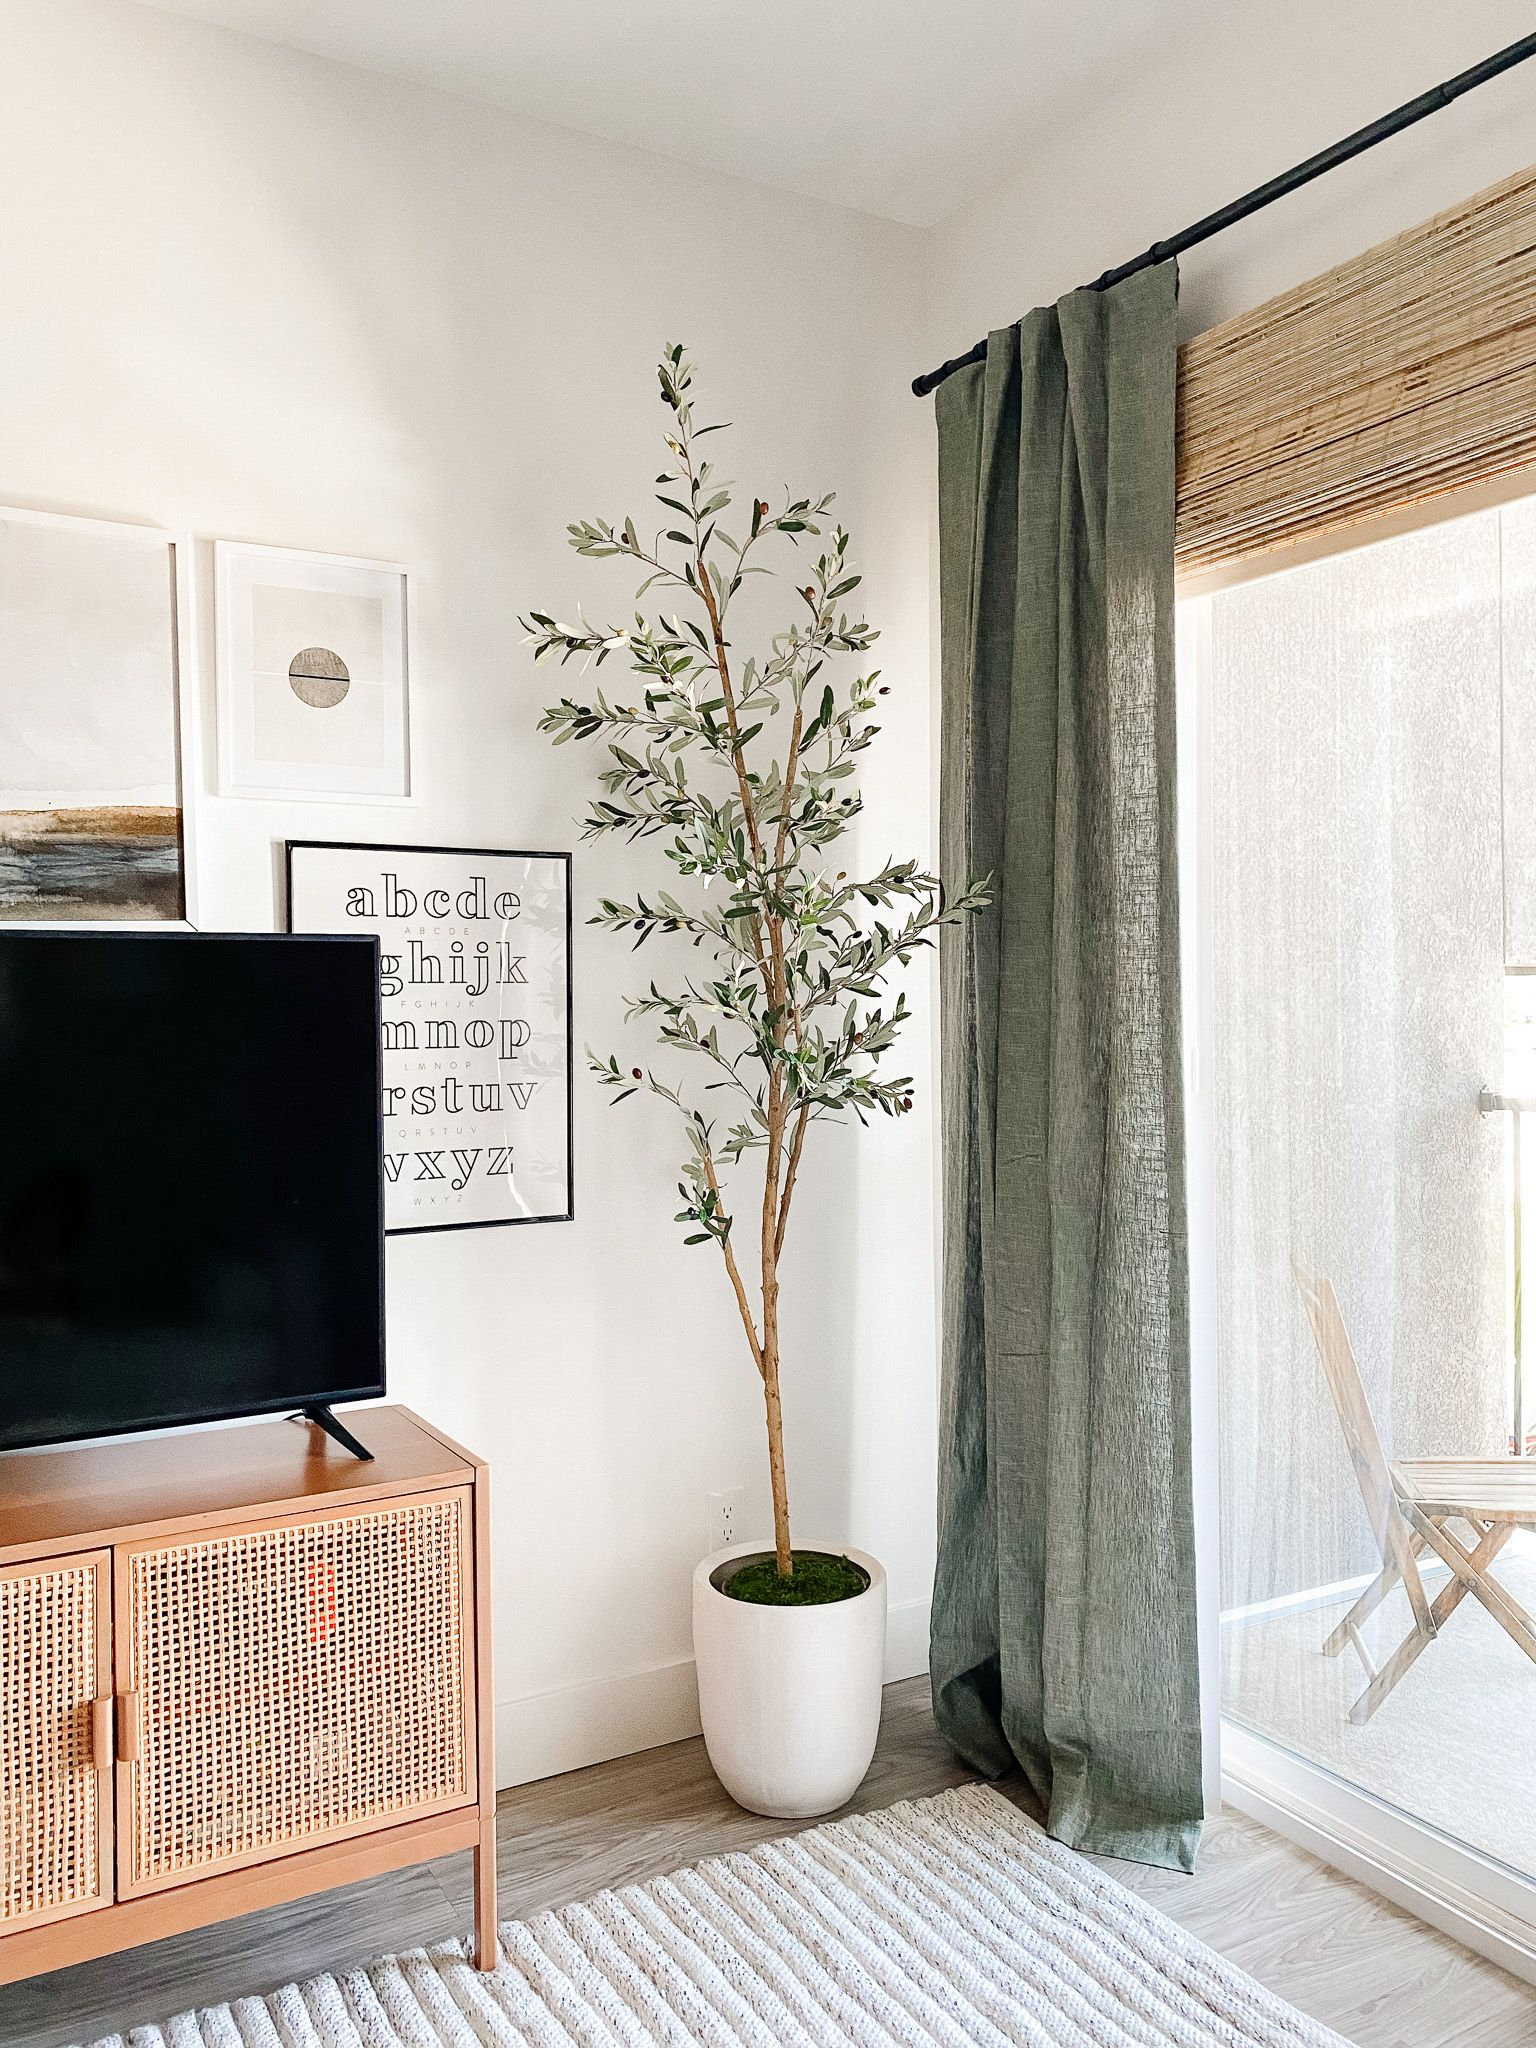 Decorating My First Apartment: A lesson in budget-friendly classic pieces and creating moments